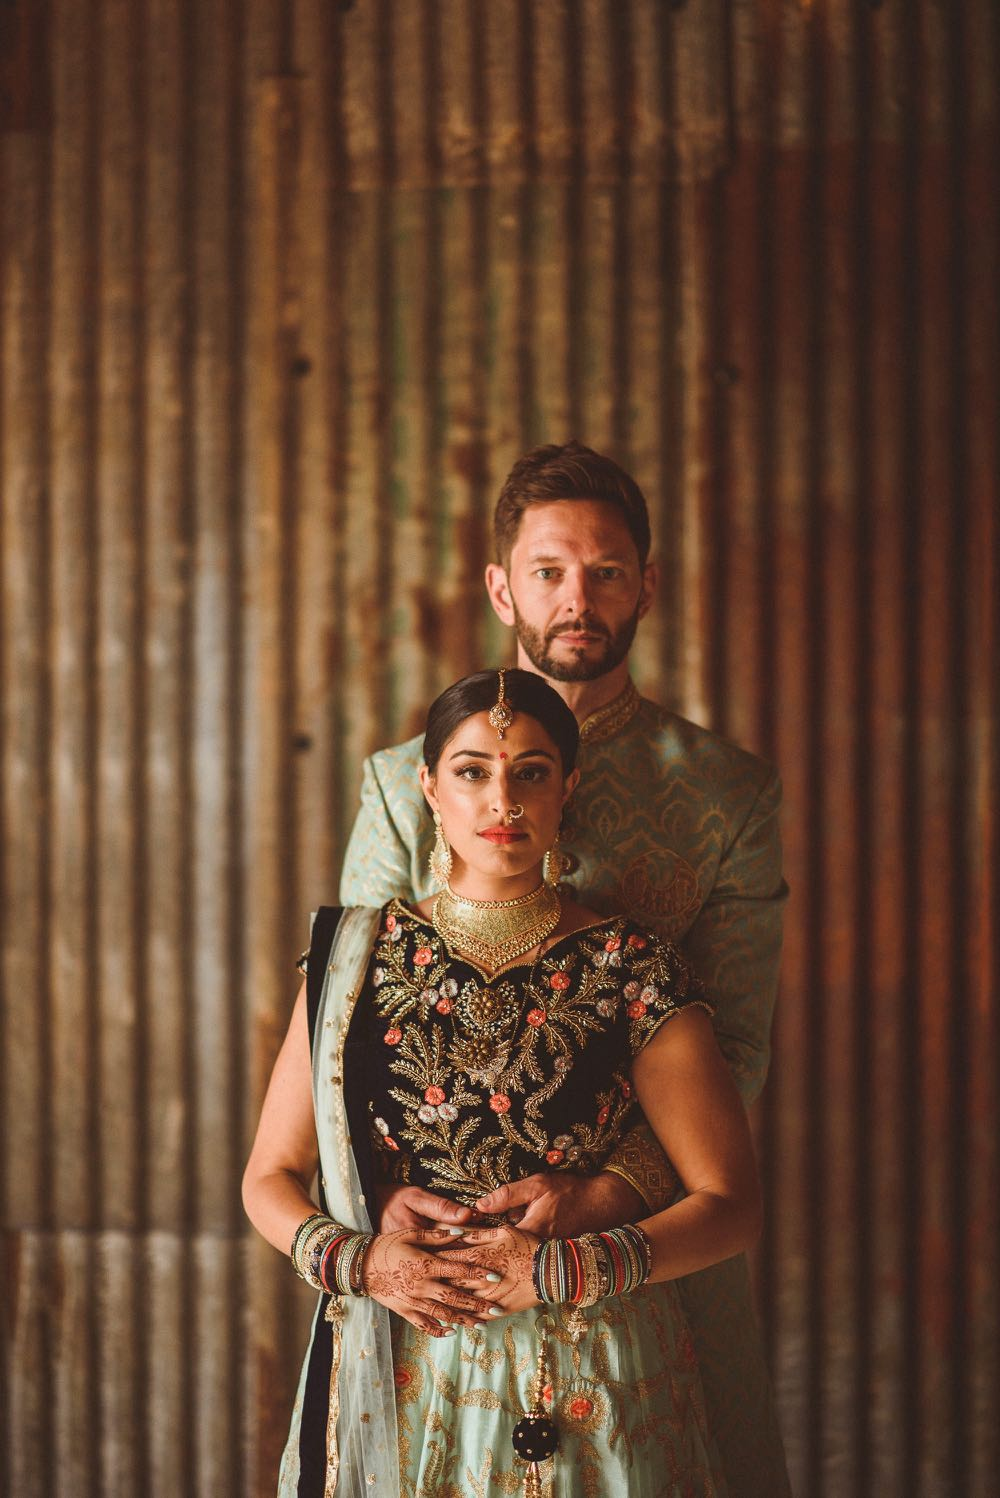 Couple in Indian wedding dress in the Really Rustic Barn